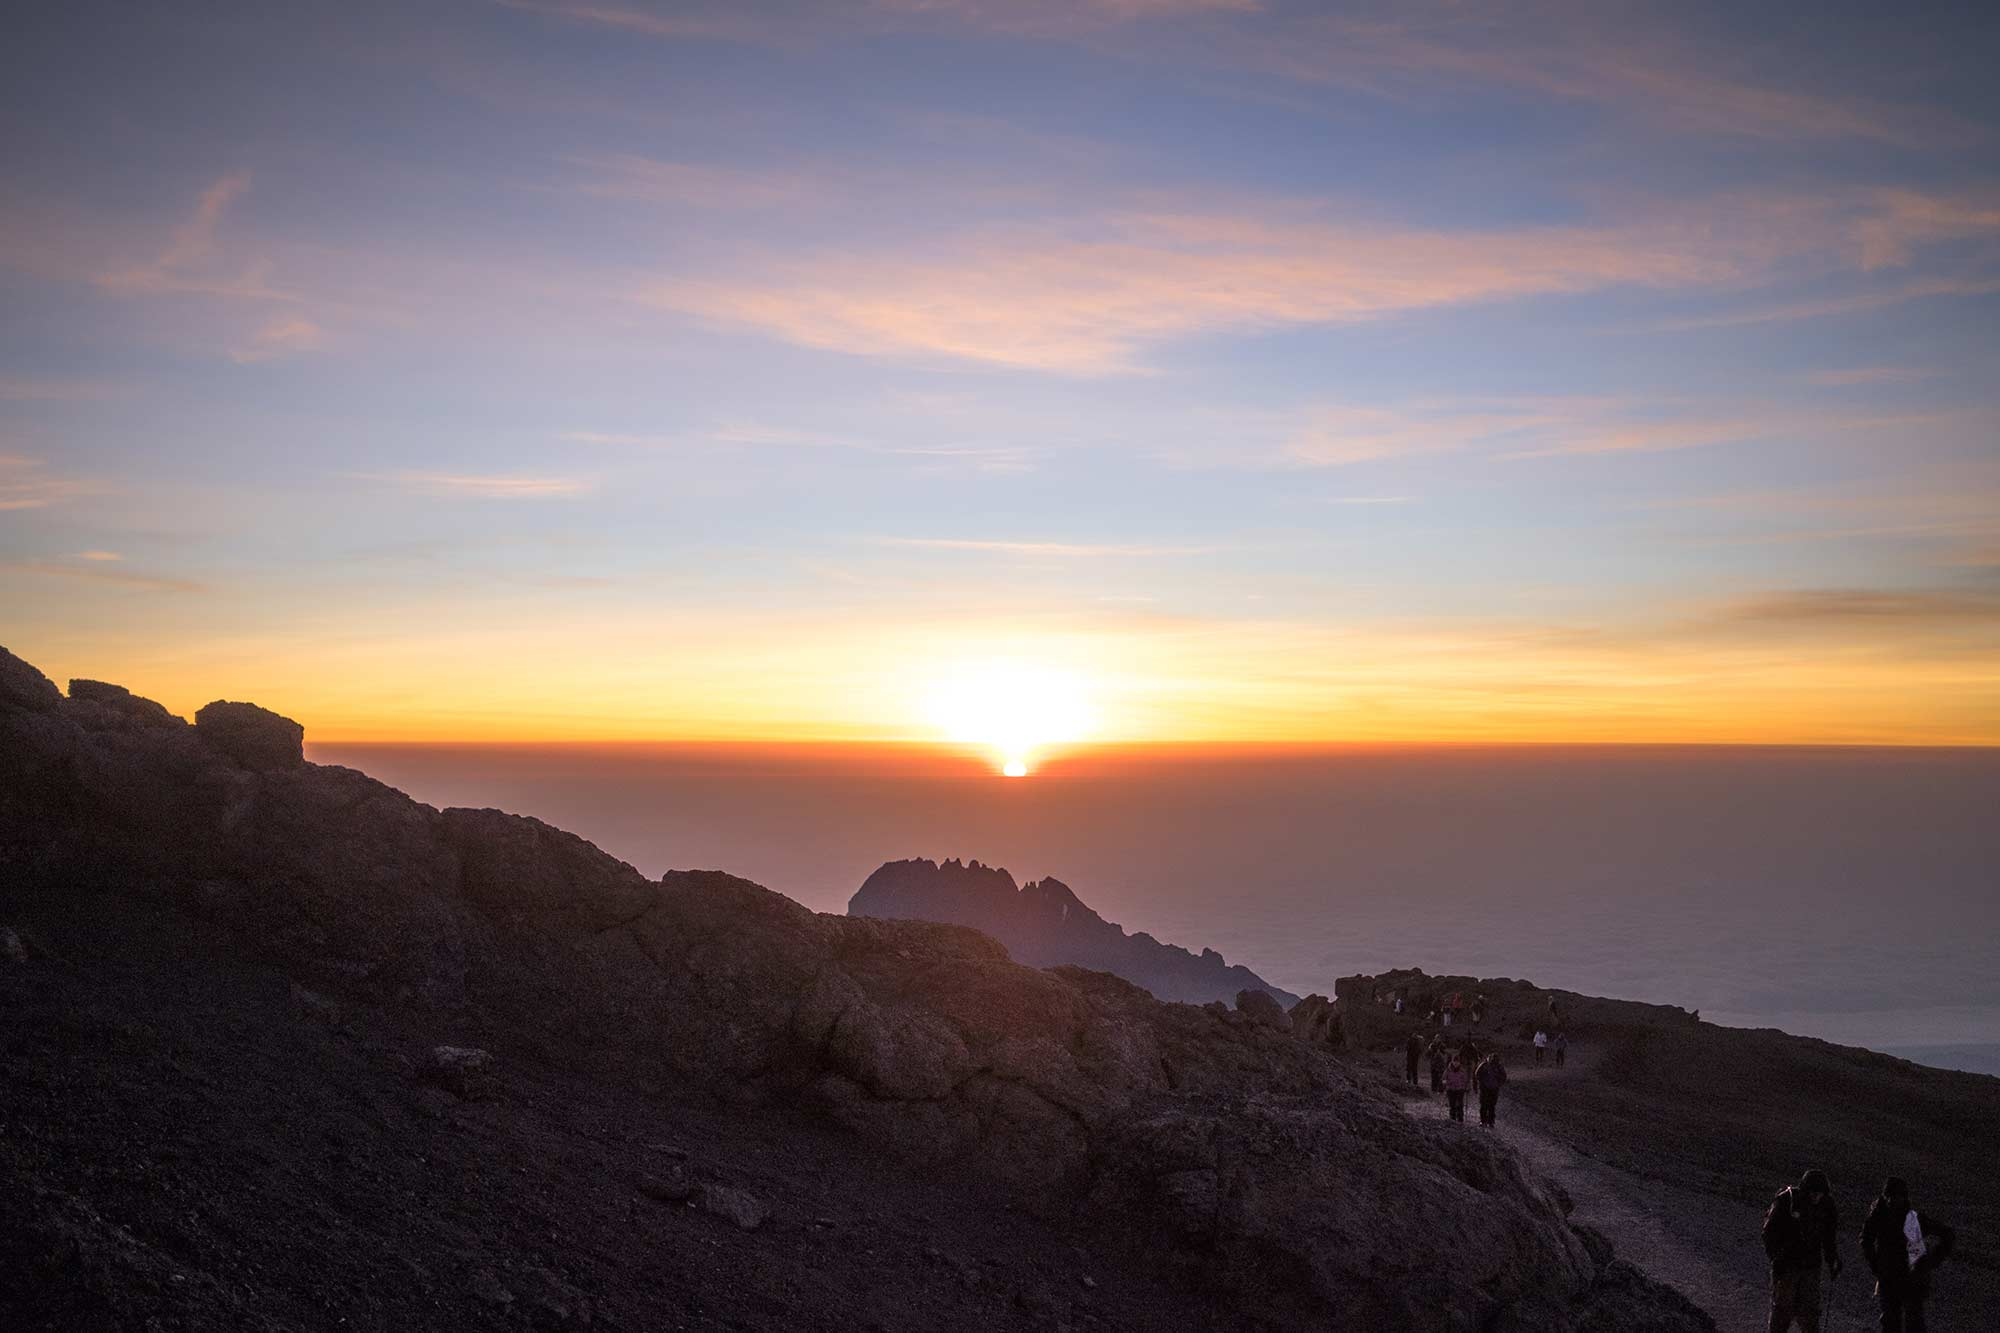 The sun appears on the horizon above Mawenzi, Kilimanjaro's sister peak. Like a great serpent, a line of climbers trudges ever forward.